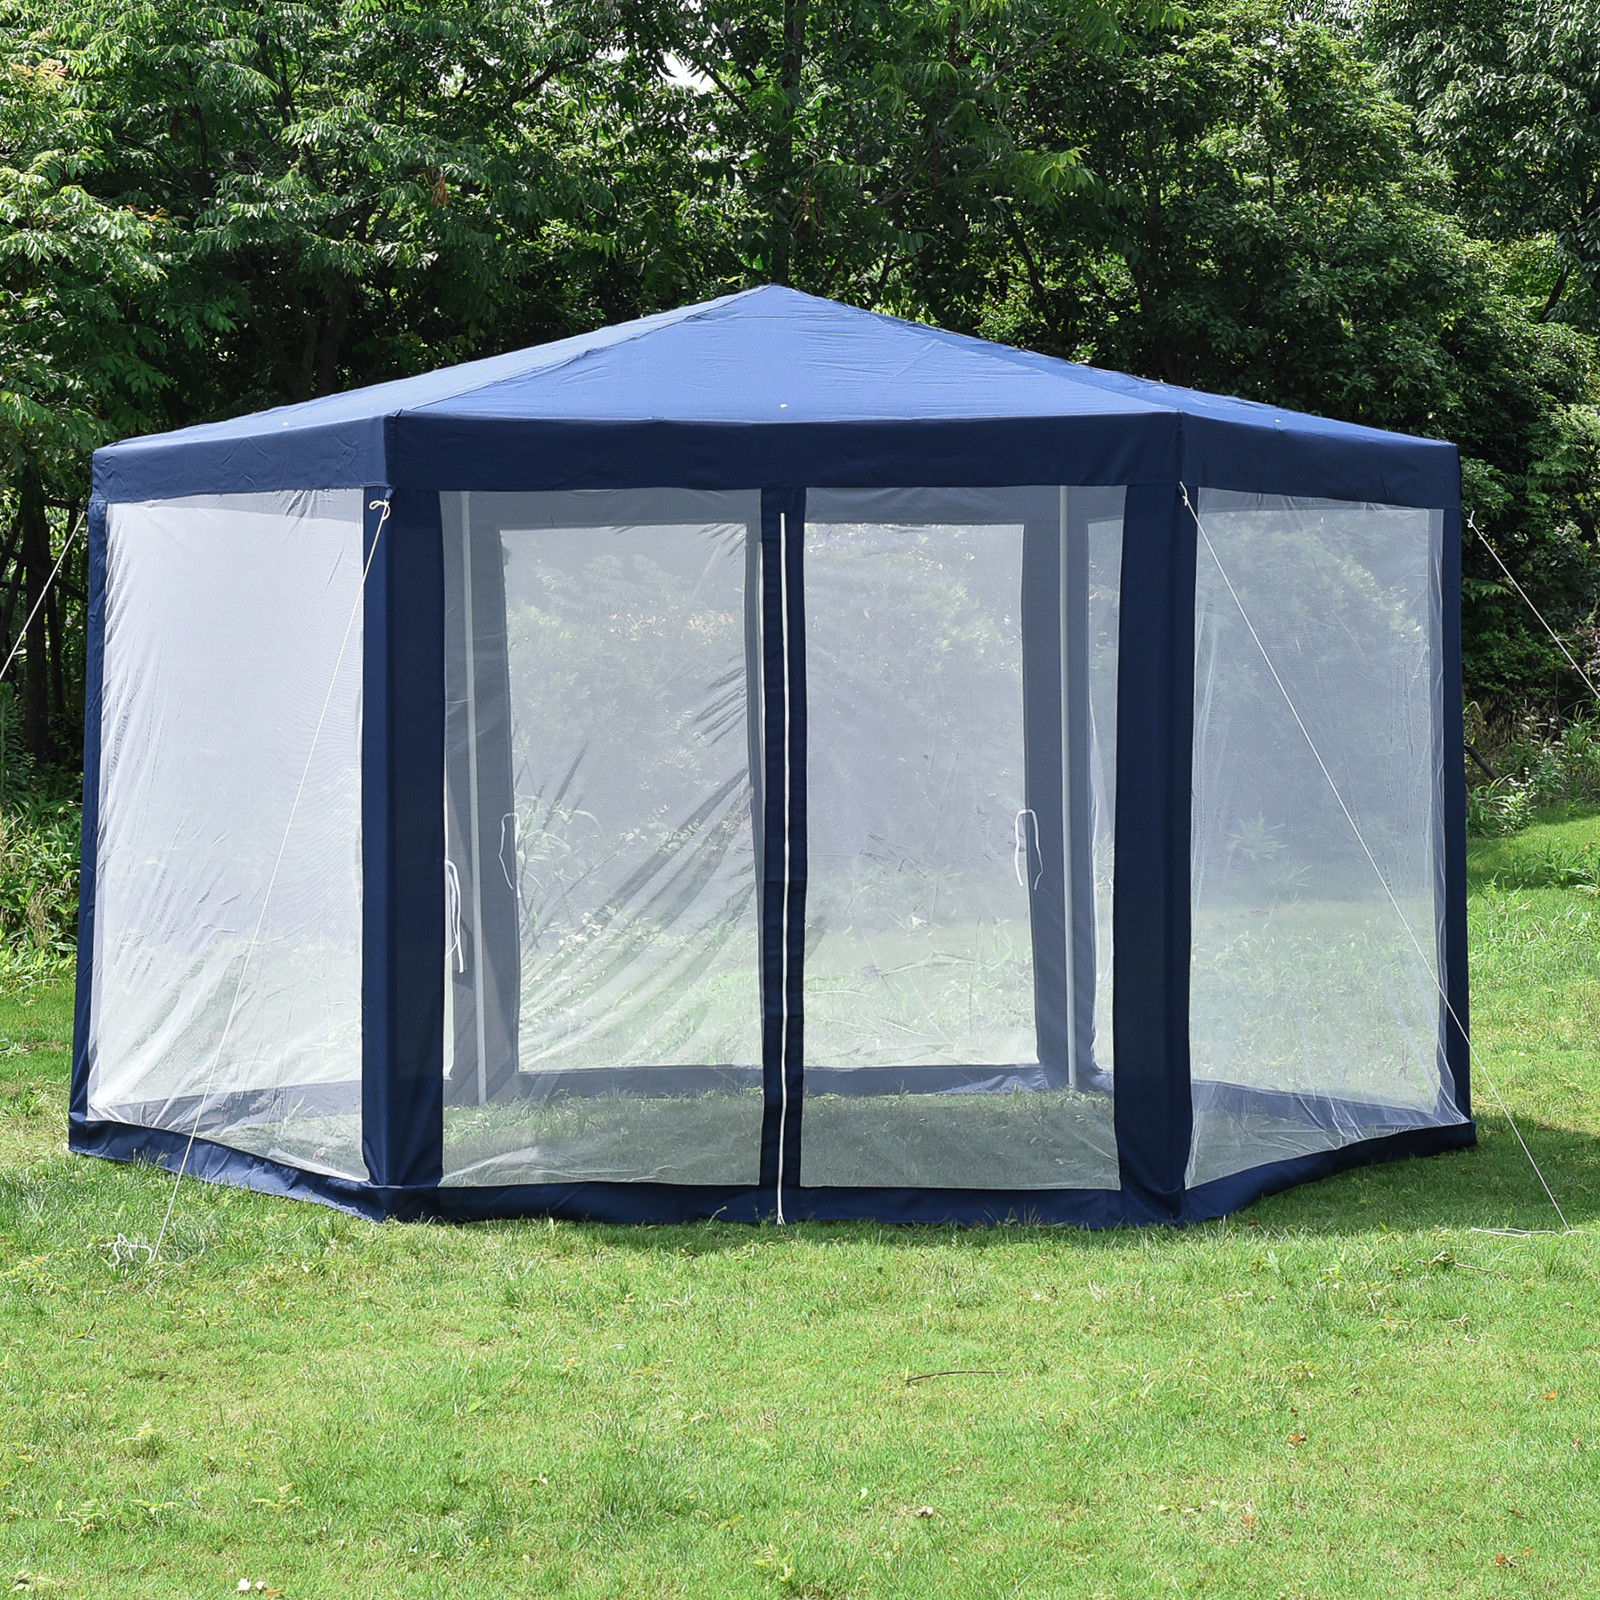 Hexagonal Gazebo Outdoor Patio Canopy With Mosquito Net